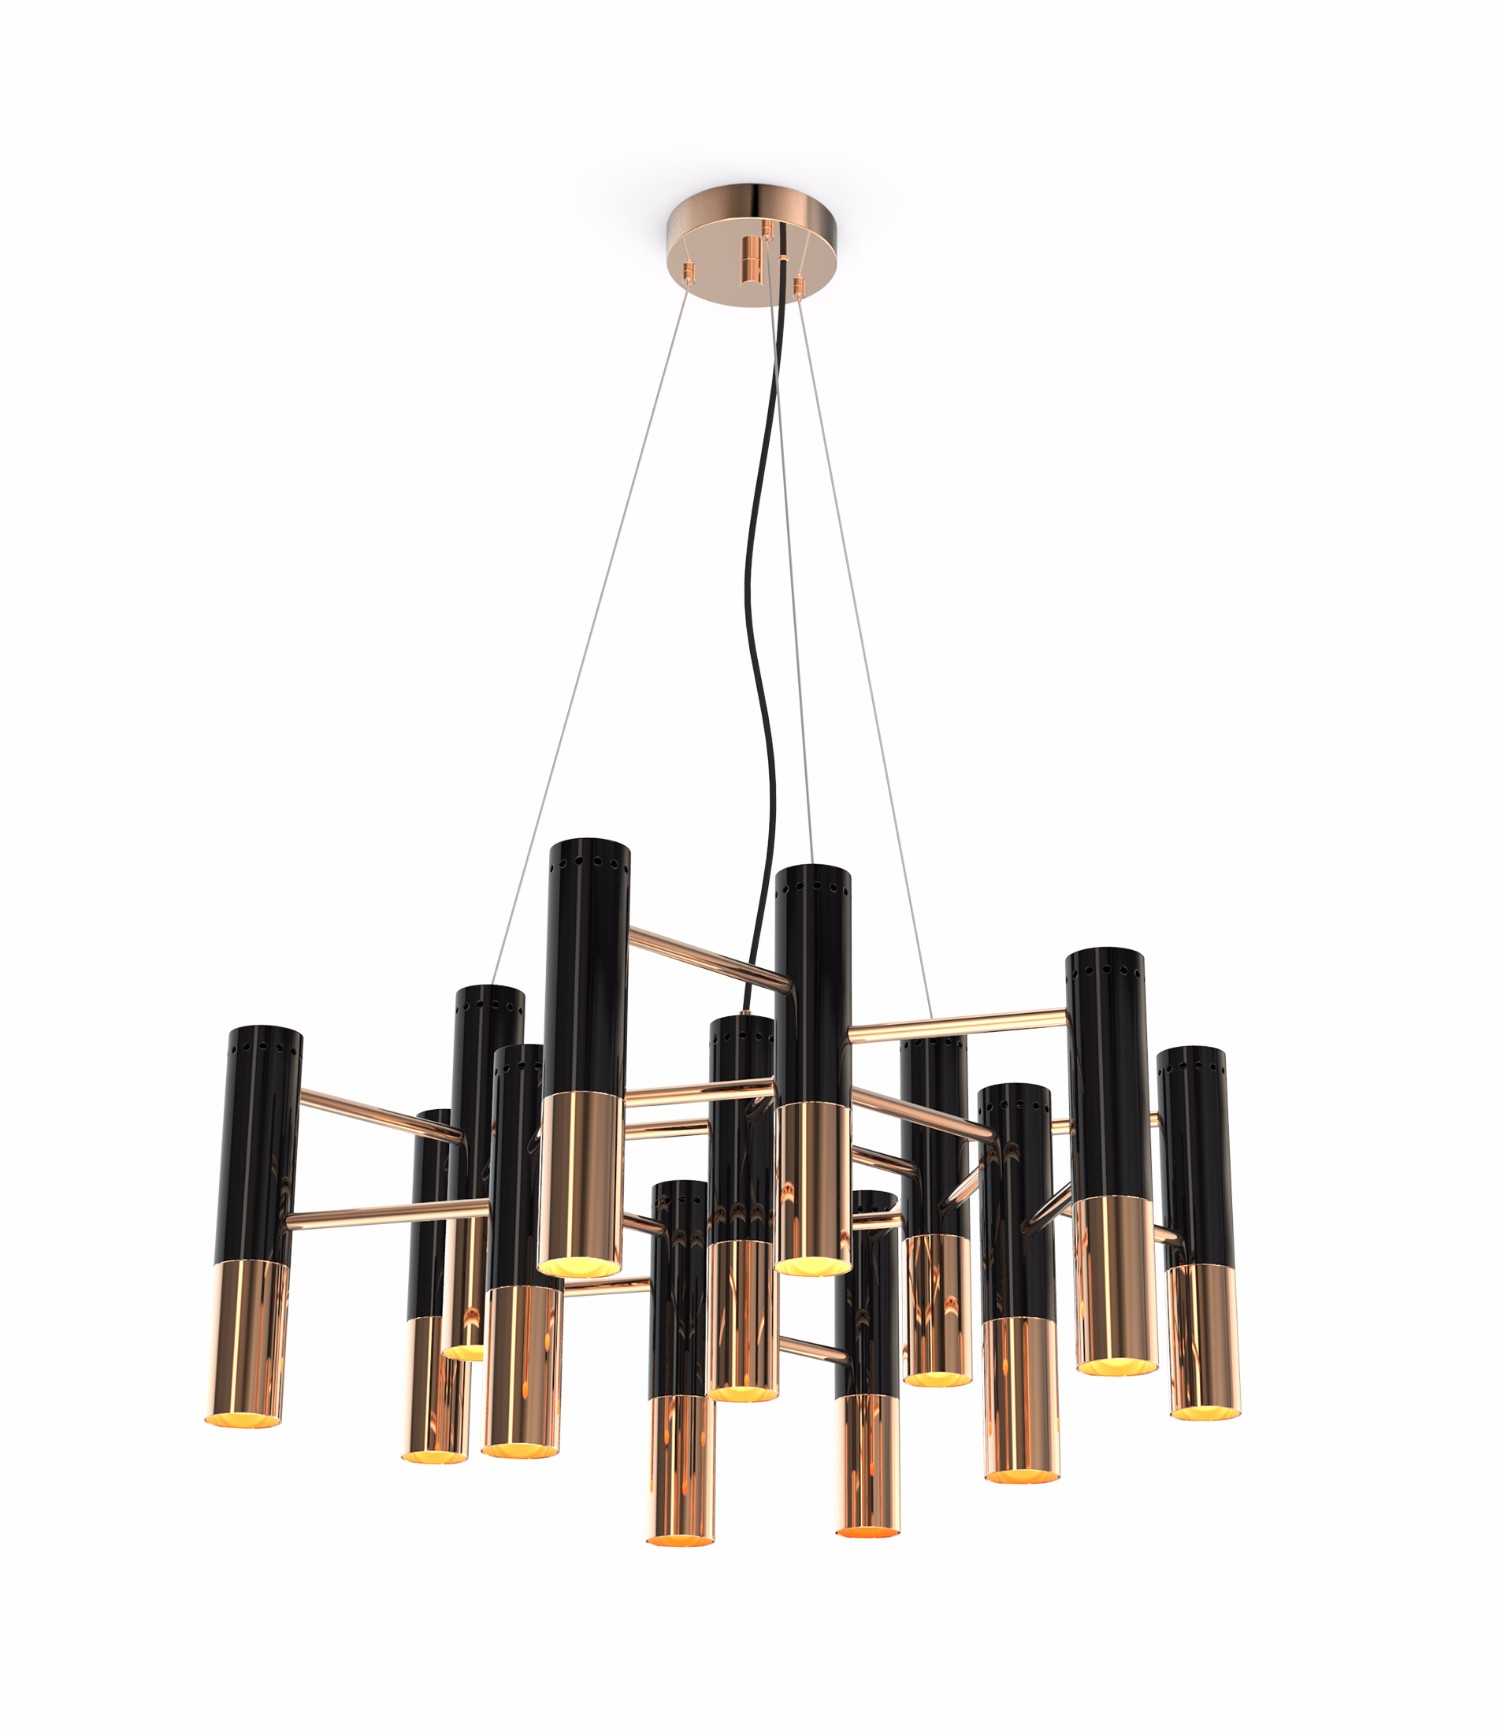 Trending Product Elevate Your Fall Home Decor with Ike Chandelier 6